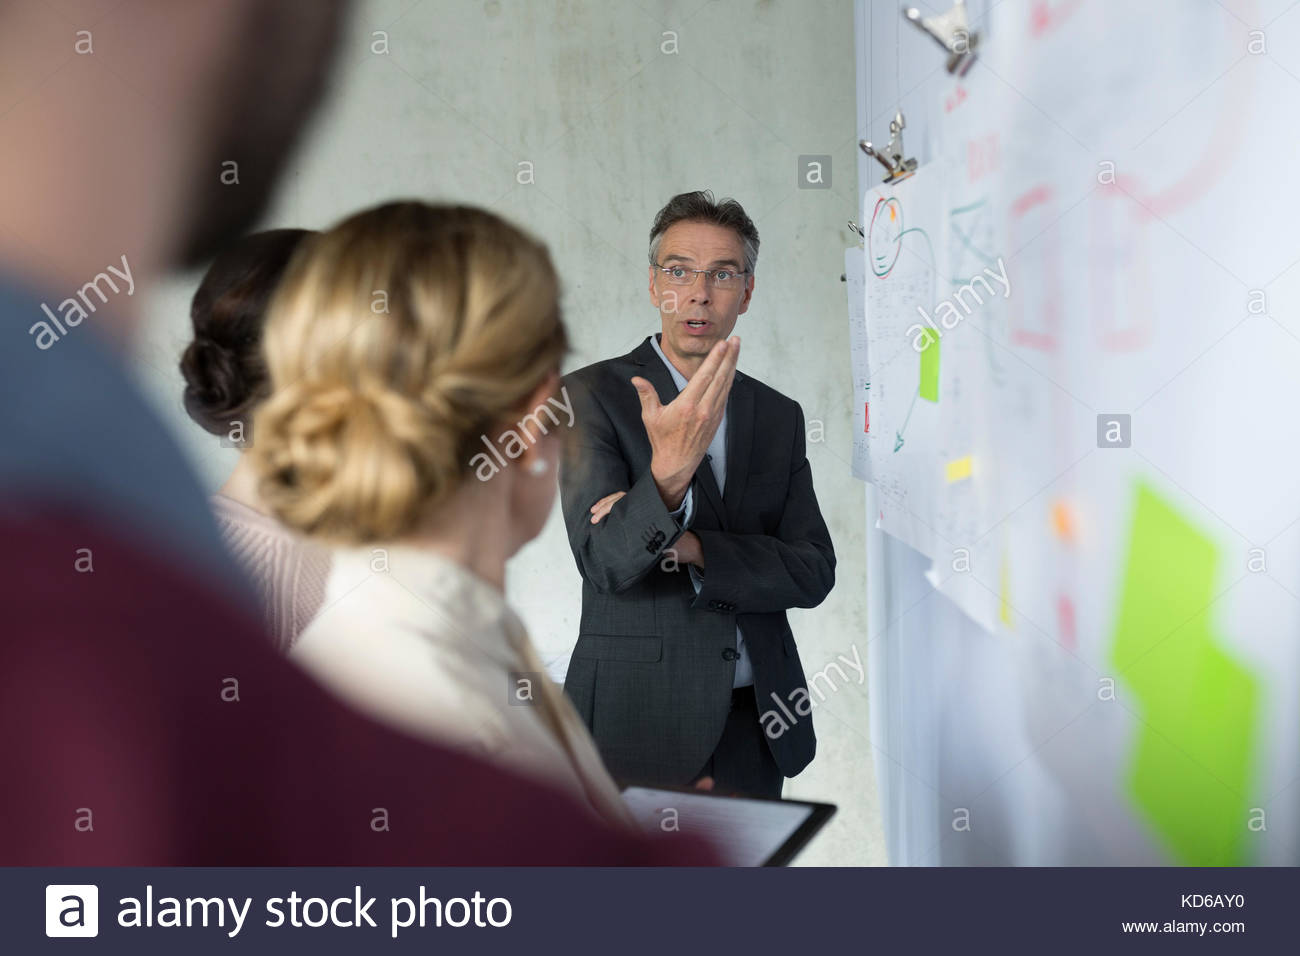 Business people brainstorming at board in office meeting - Stock Image